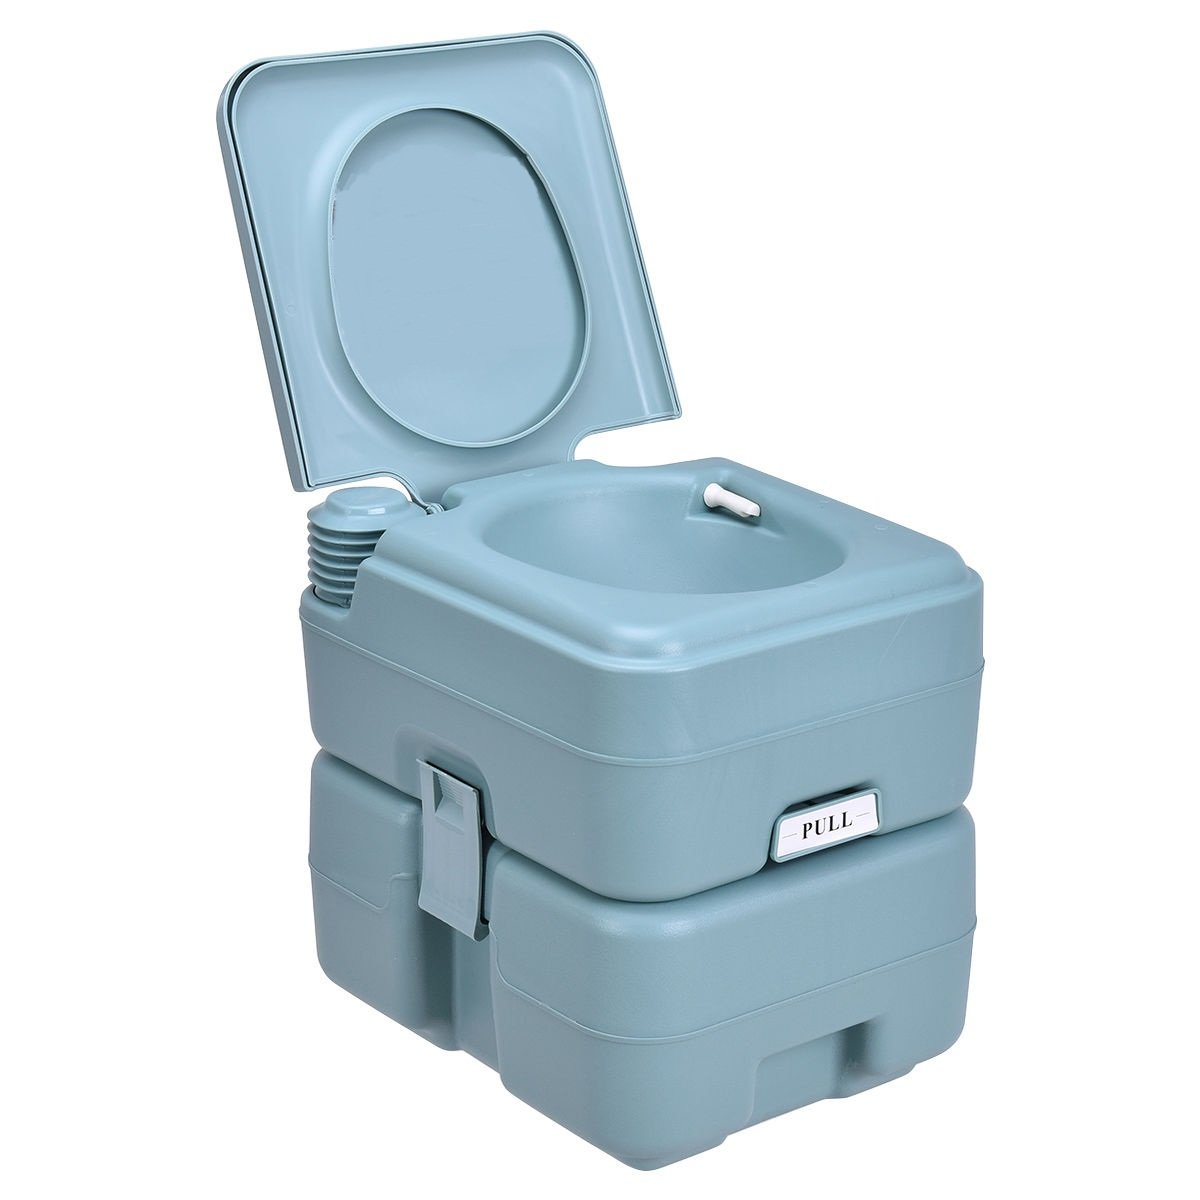 20L Easy Carry & Clean Portable Travel Flush Toilet Greenish Gray Potty by FDInspiration (Image #1)